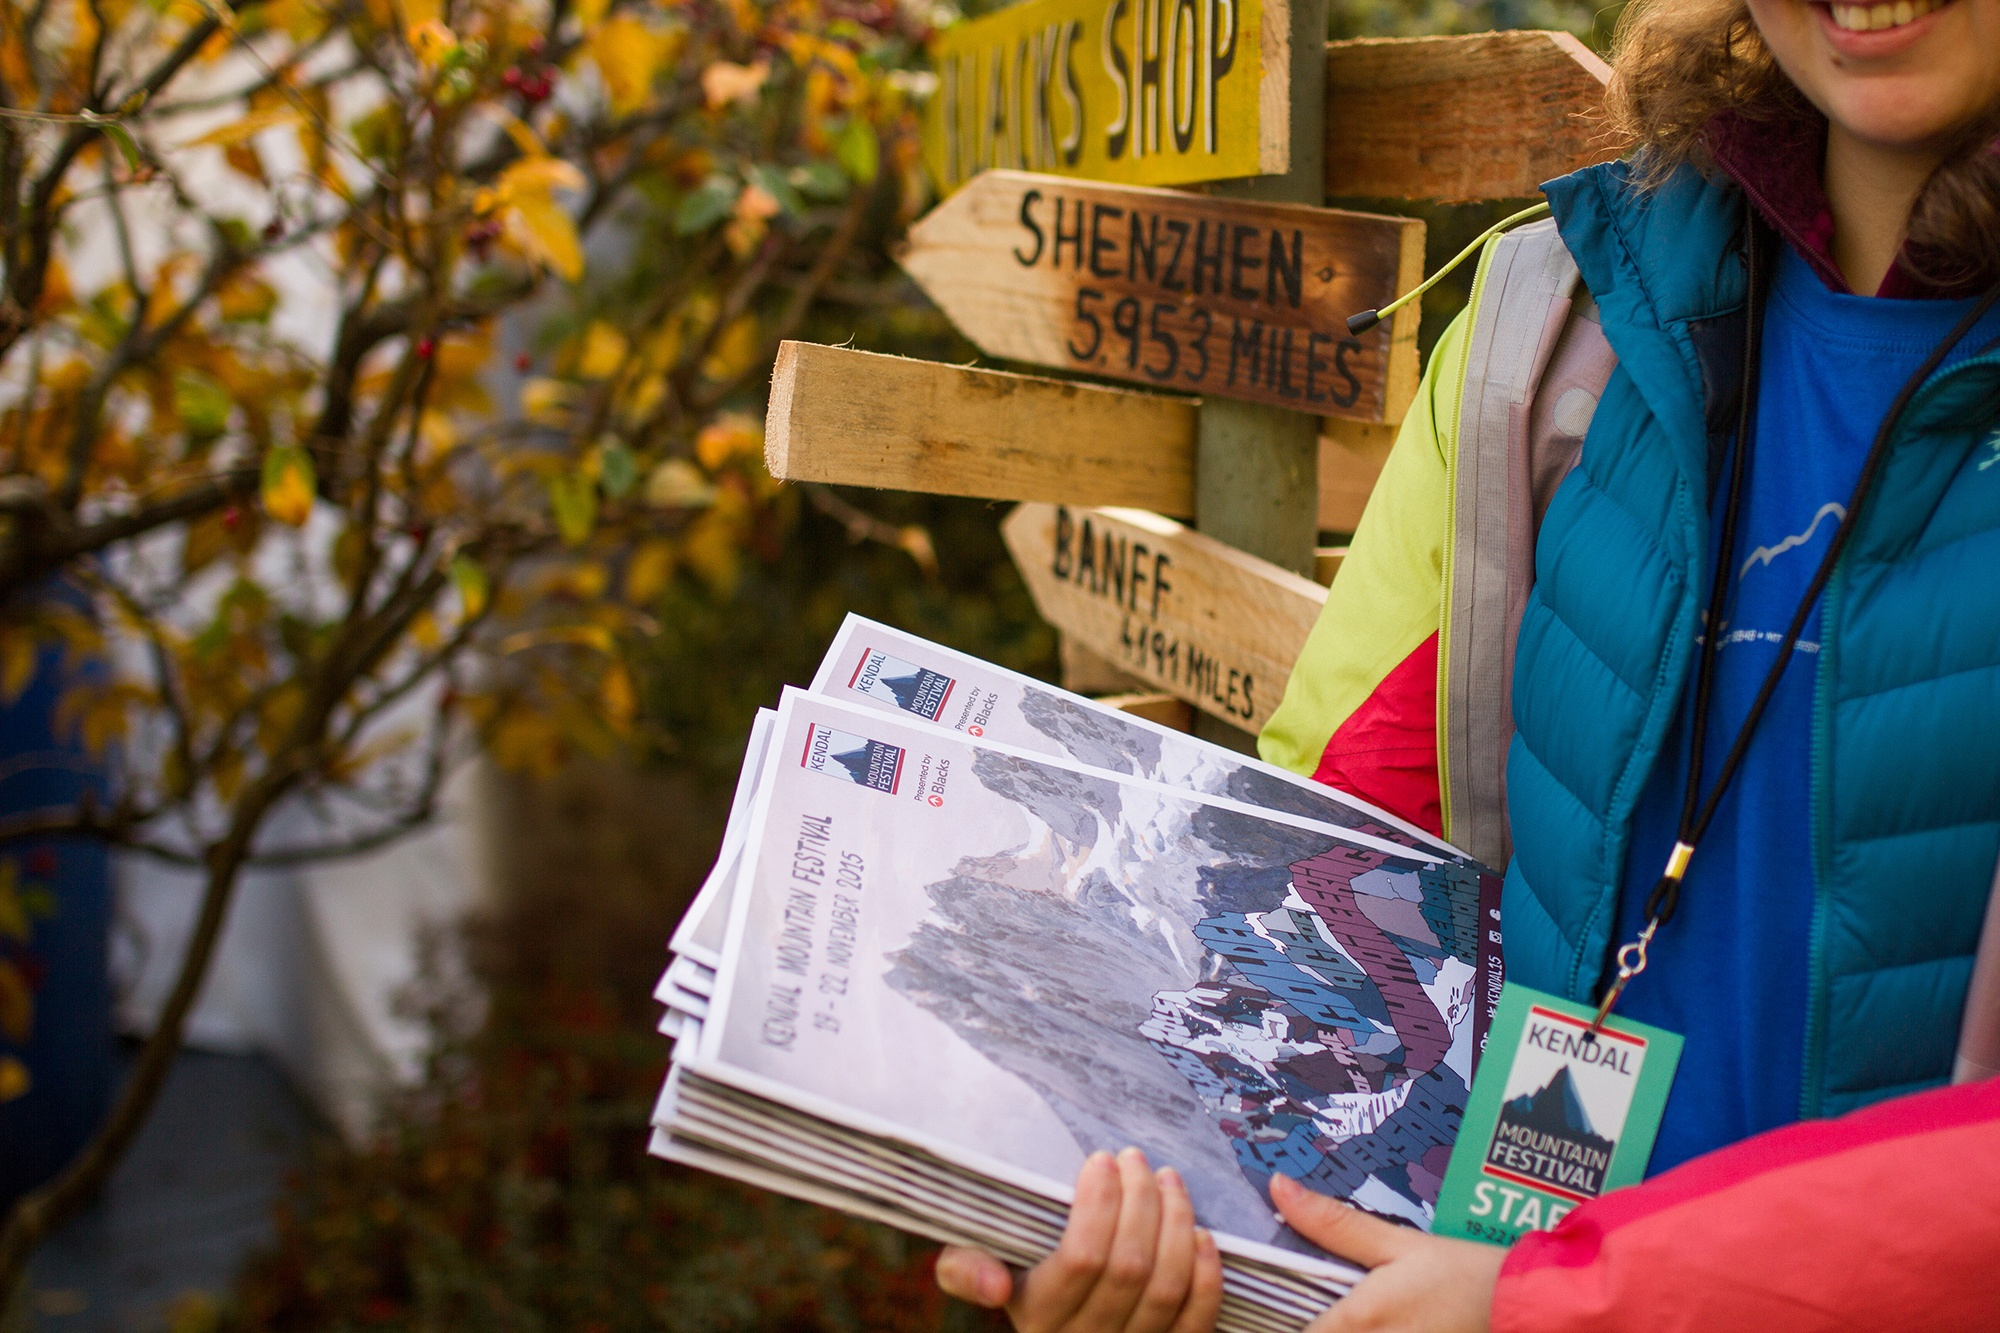 Brochures at Kendal Mountain Festival. Photography by Jessie Leong